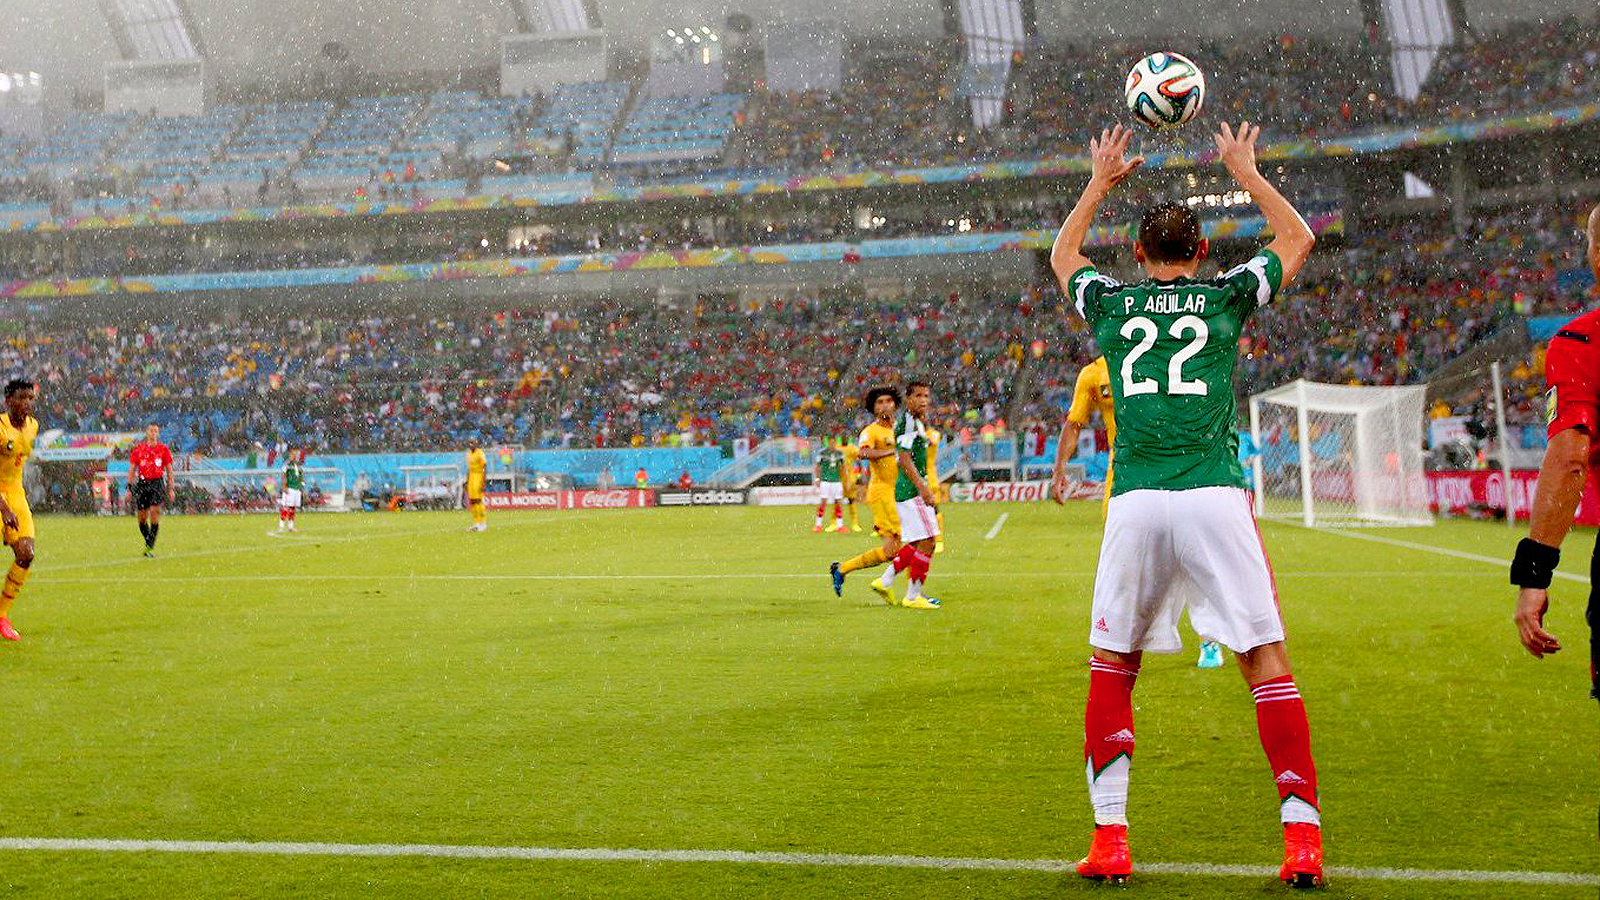 Spectators were not immune to the rain in Mexico's soggy 1-0 victory over Cameroon.